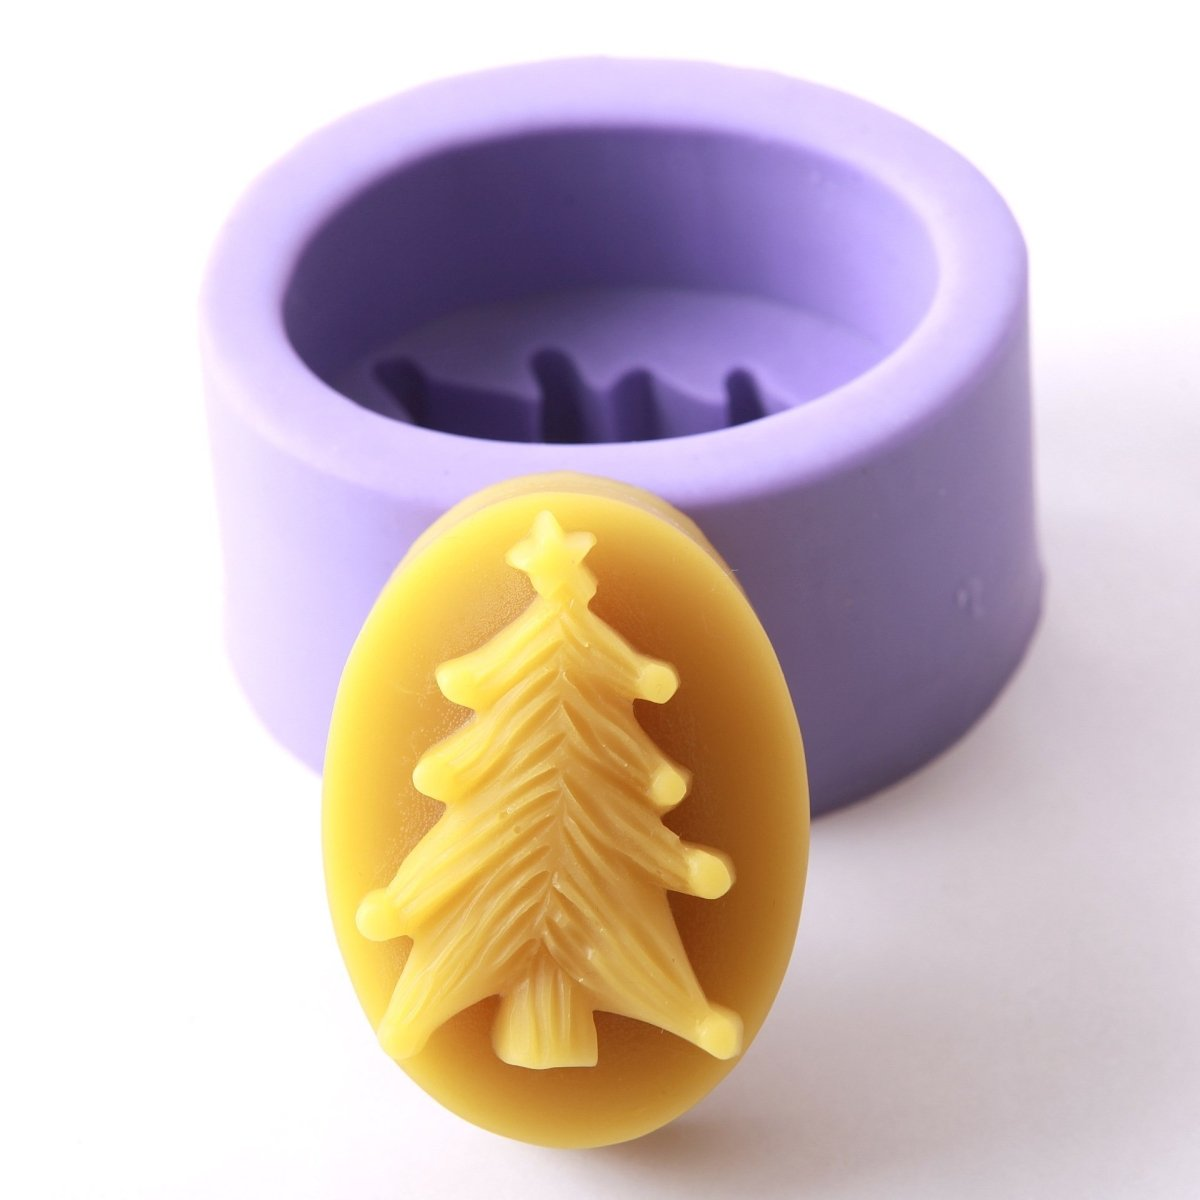 Embossed Christmas Tree Silicone Soap Mould R0084 - Mystic Moments UK